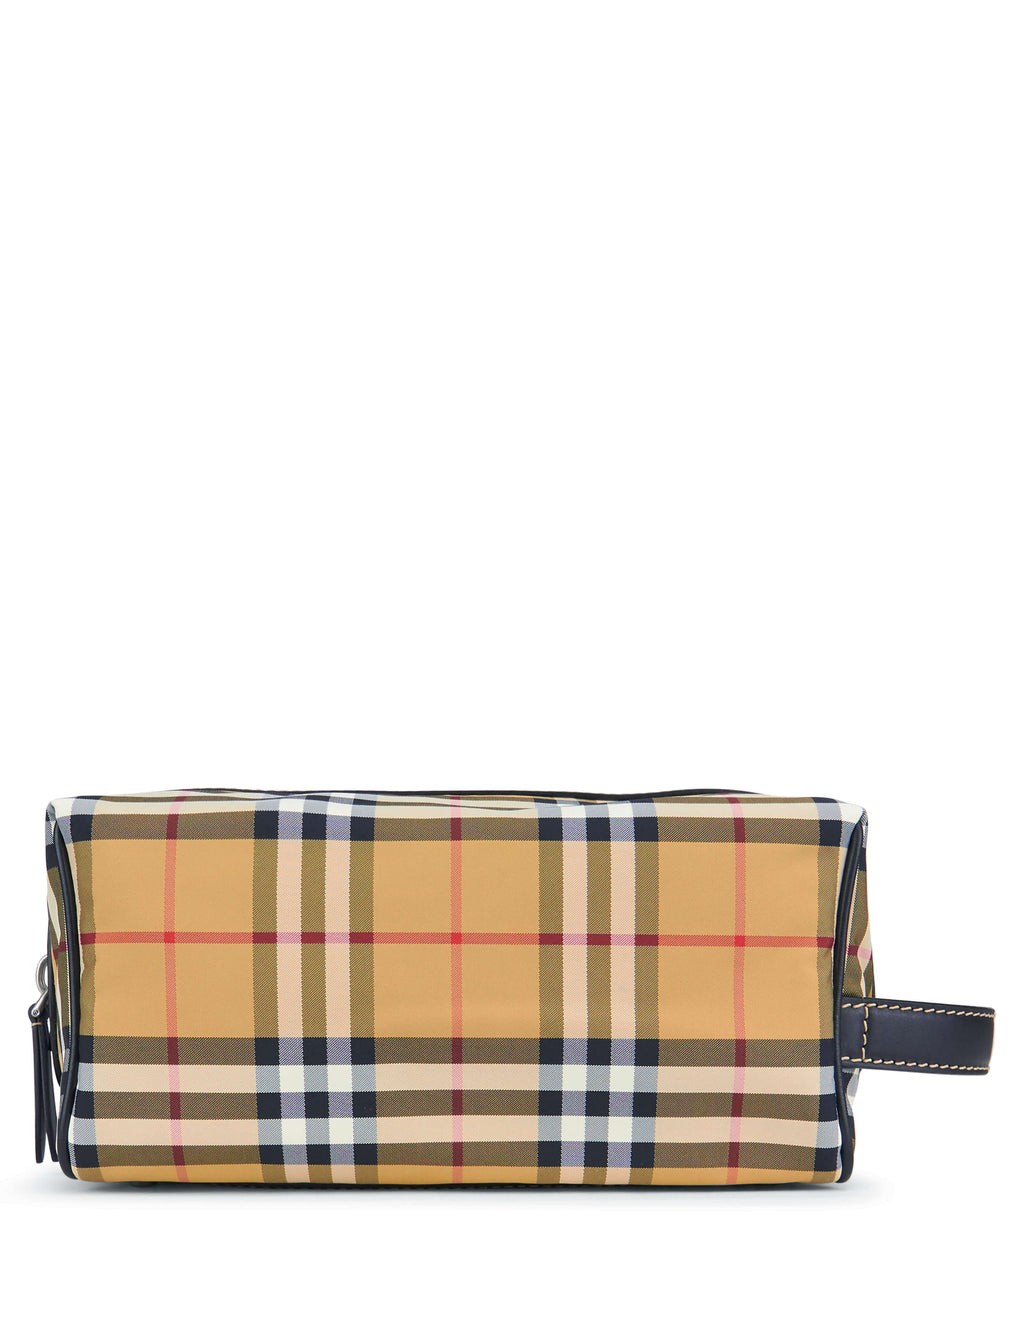 Burberry Men's Giulio Fashion Antique Yellow Check Wash Bag 8006881A2442